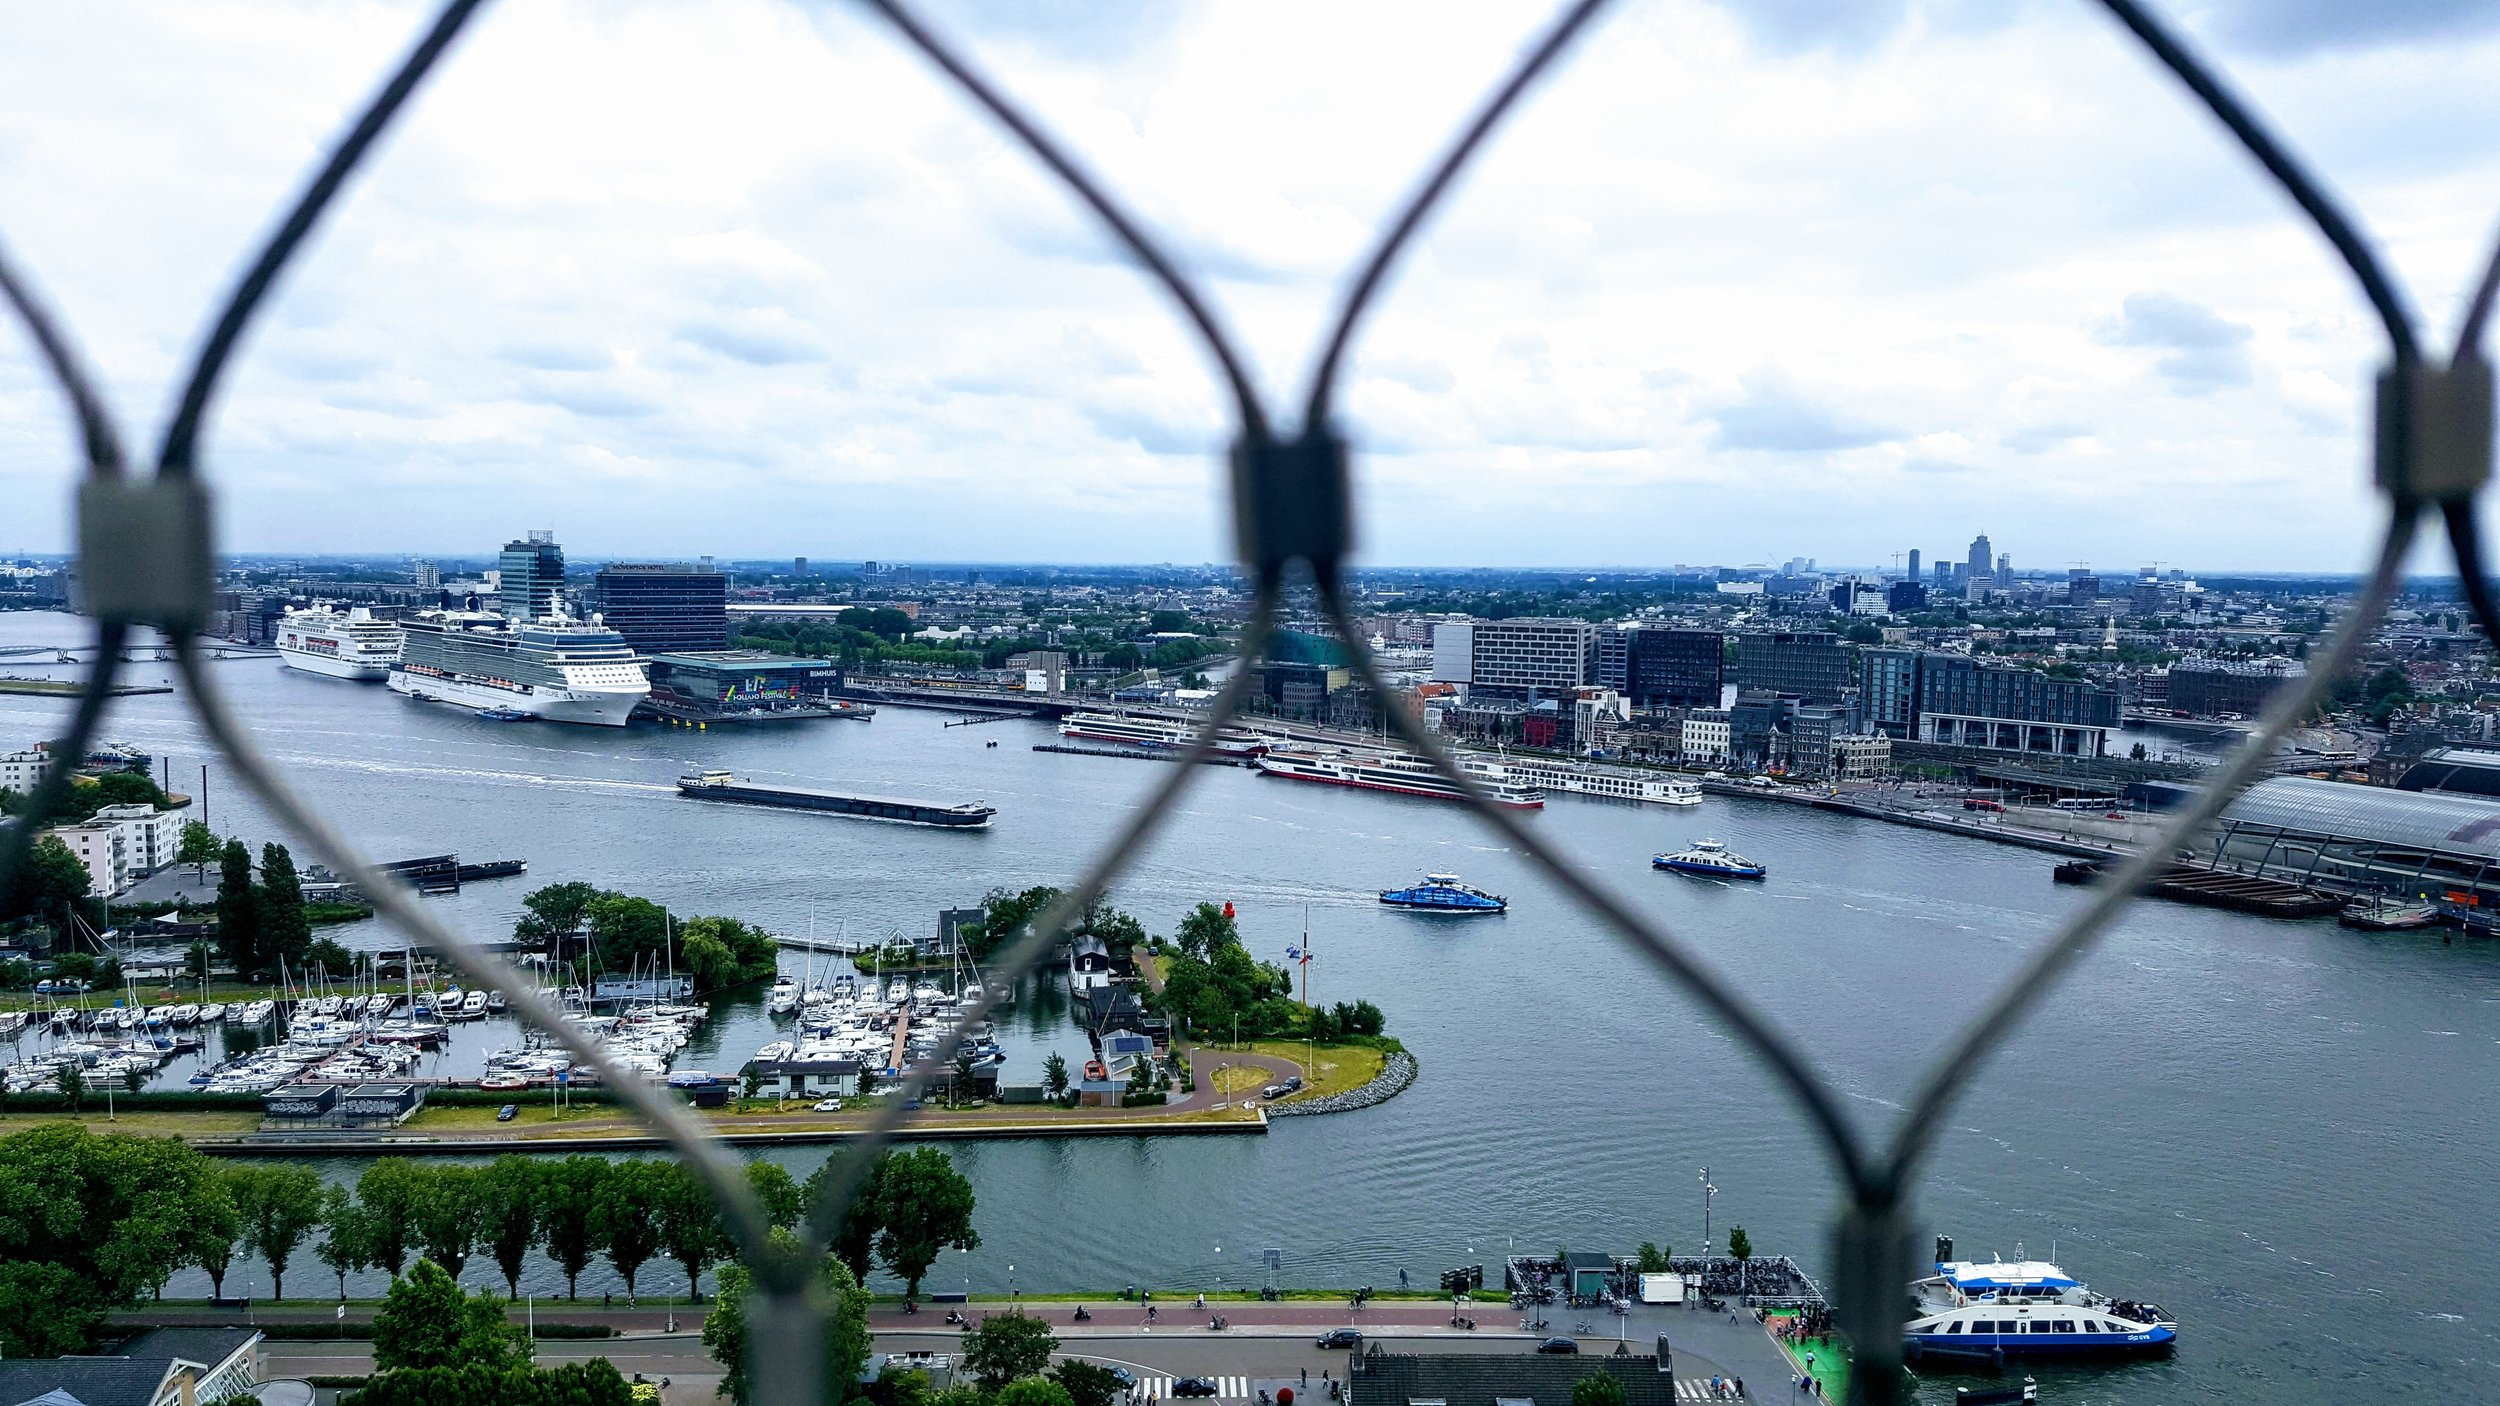 Atop A'DAM Lookout